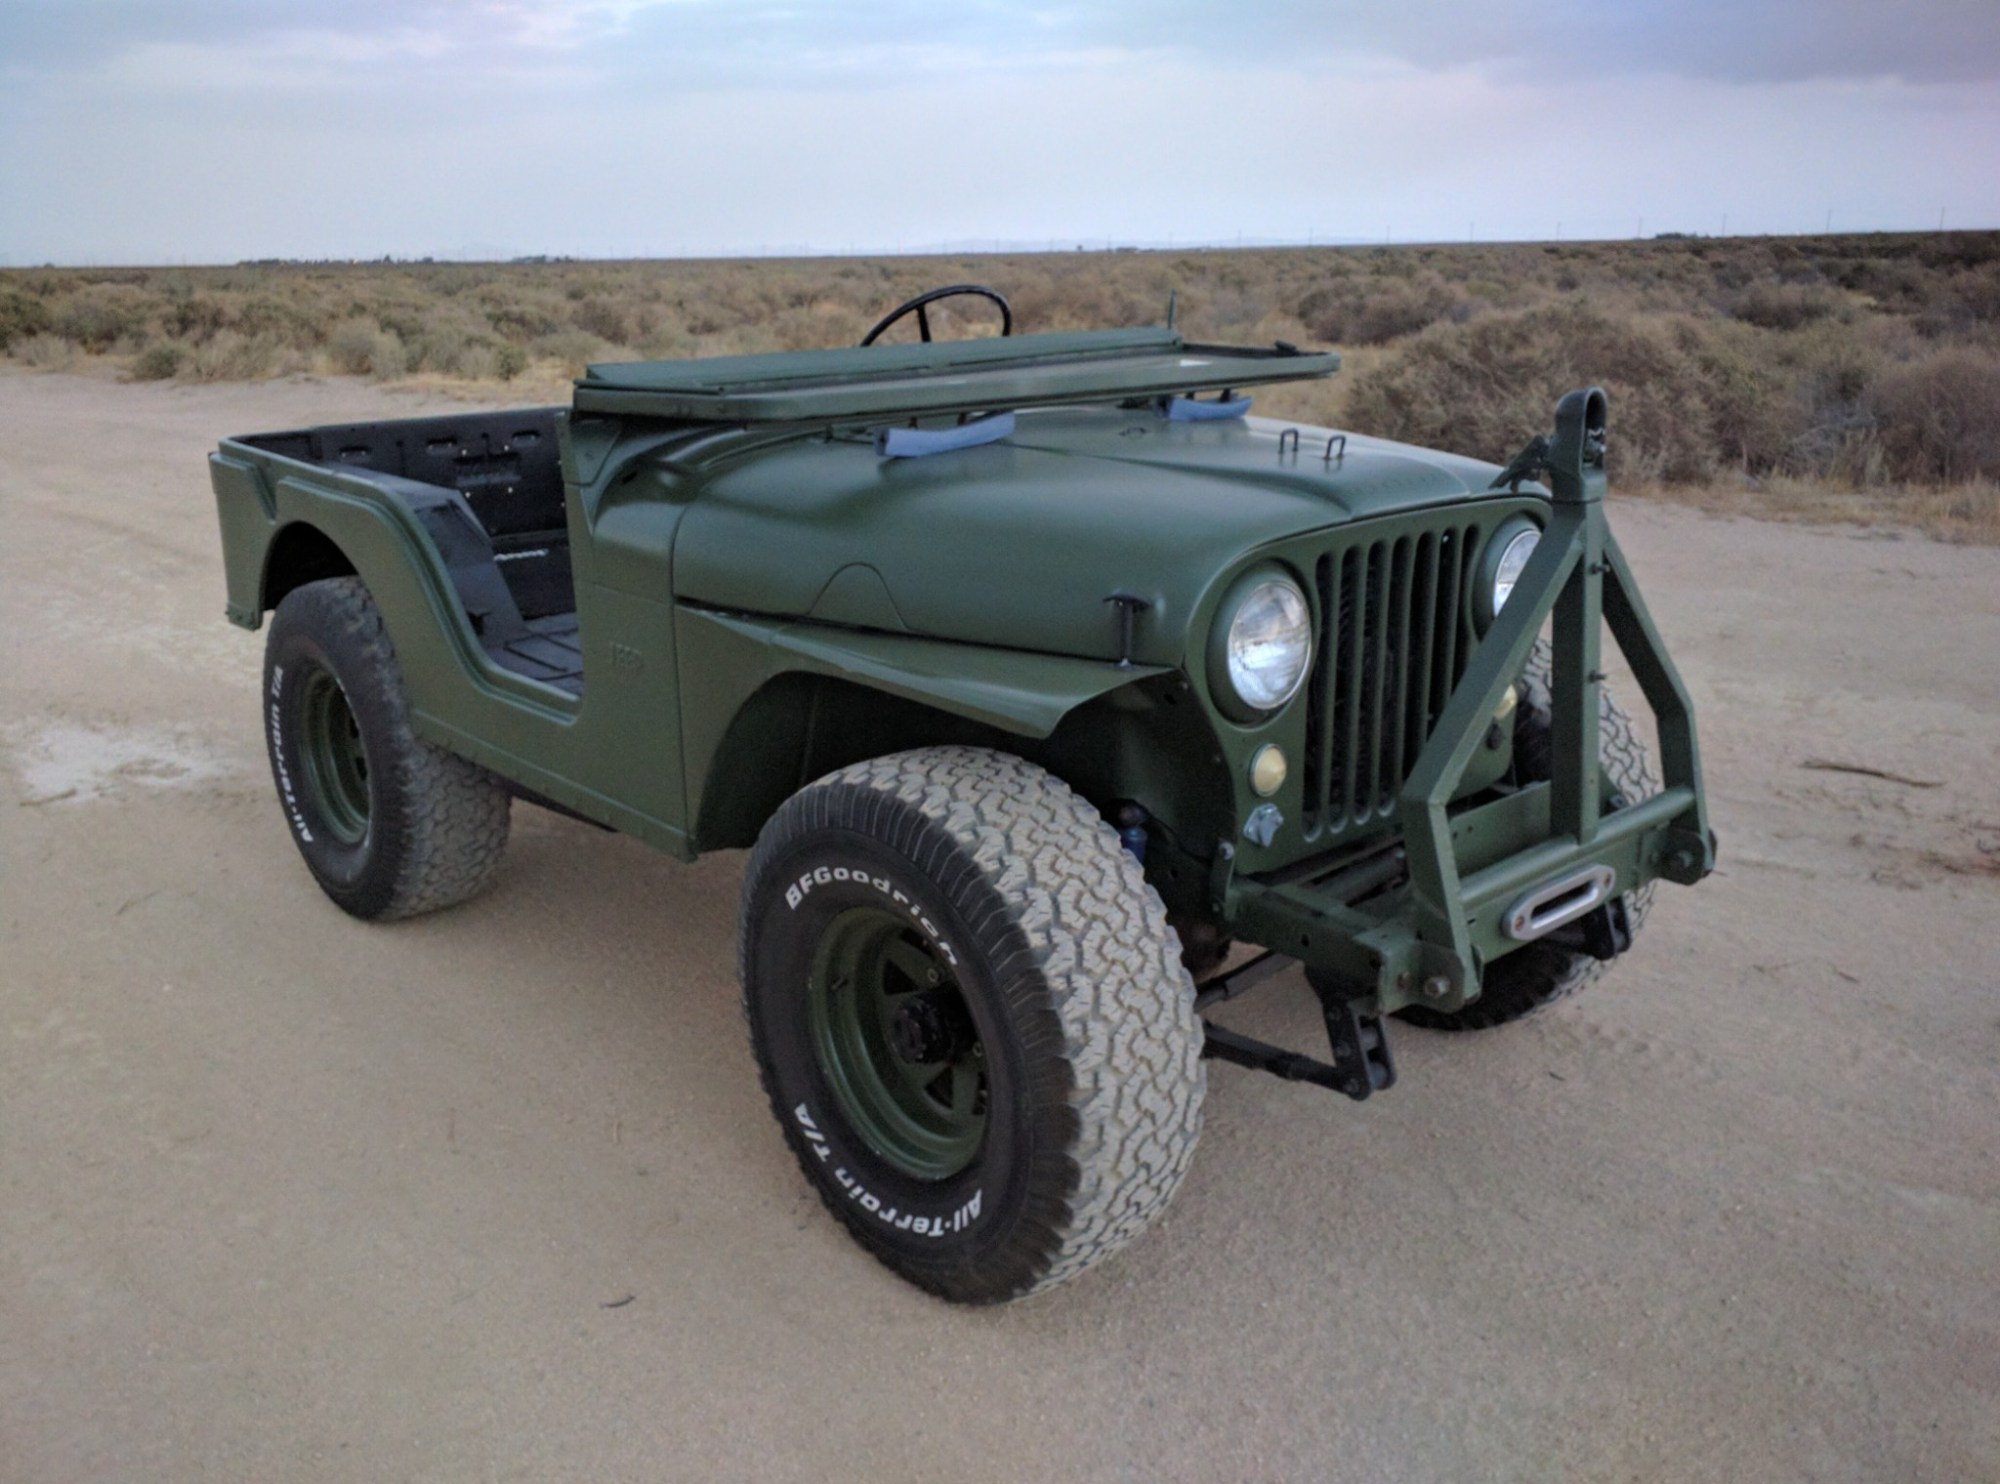 hight resolution of no reserve 1953 willys m38a1 project for sale on bat auctions sold for 4 100 on february 22 2018 lot 8 272 bring a trailer